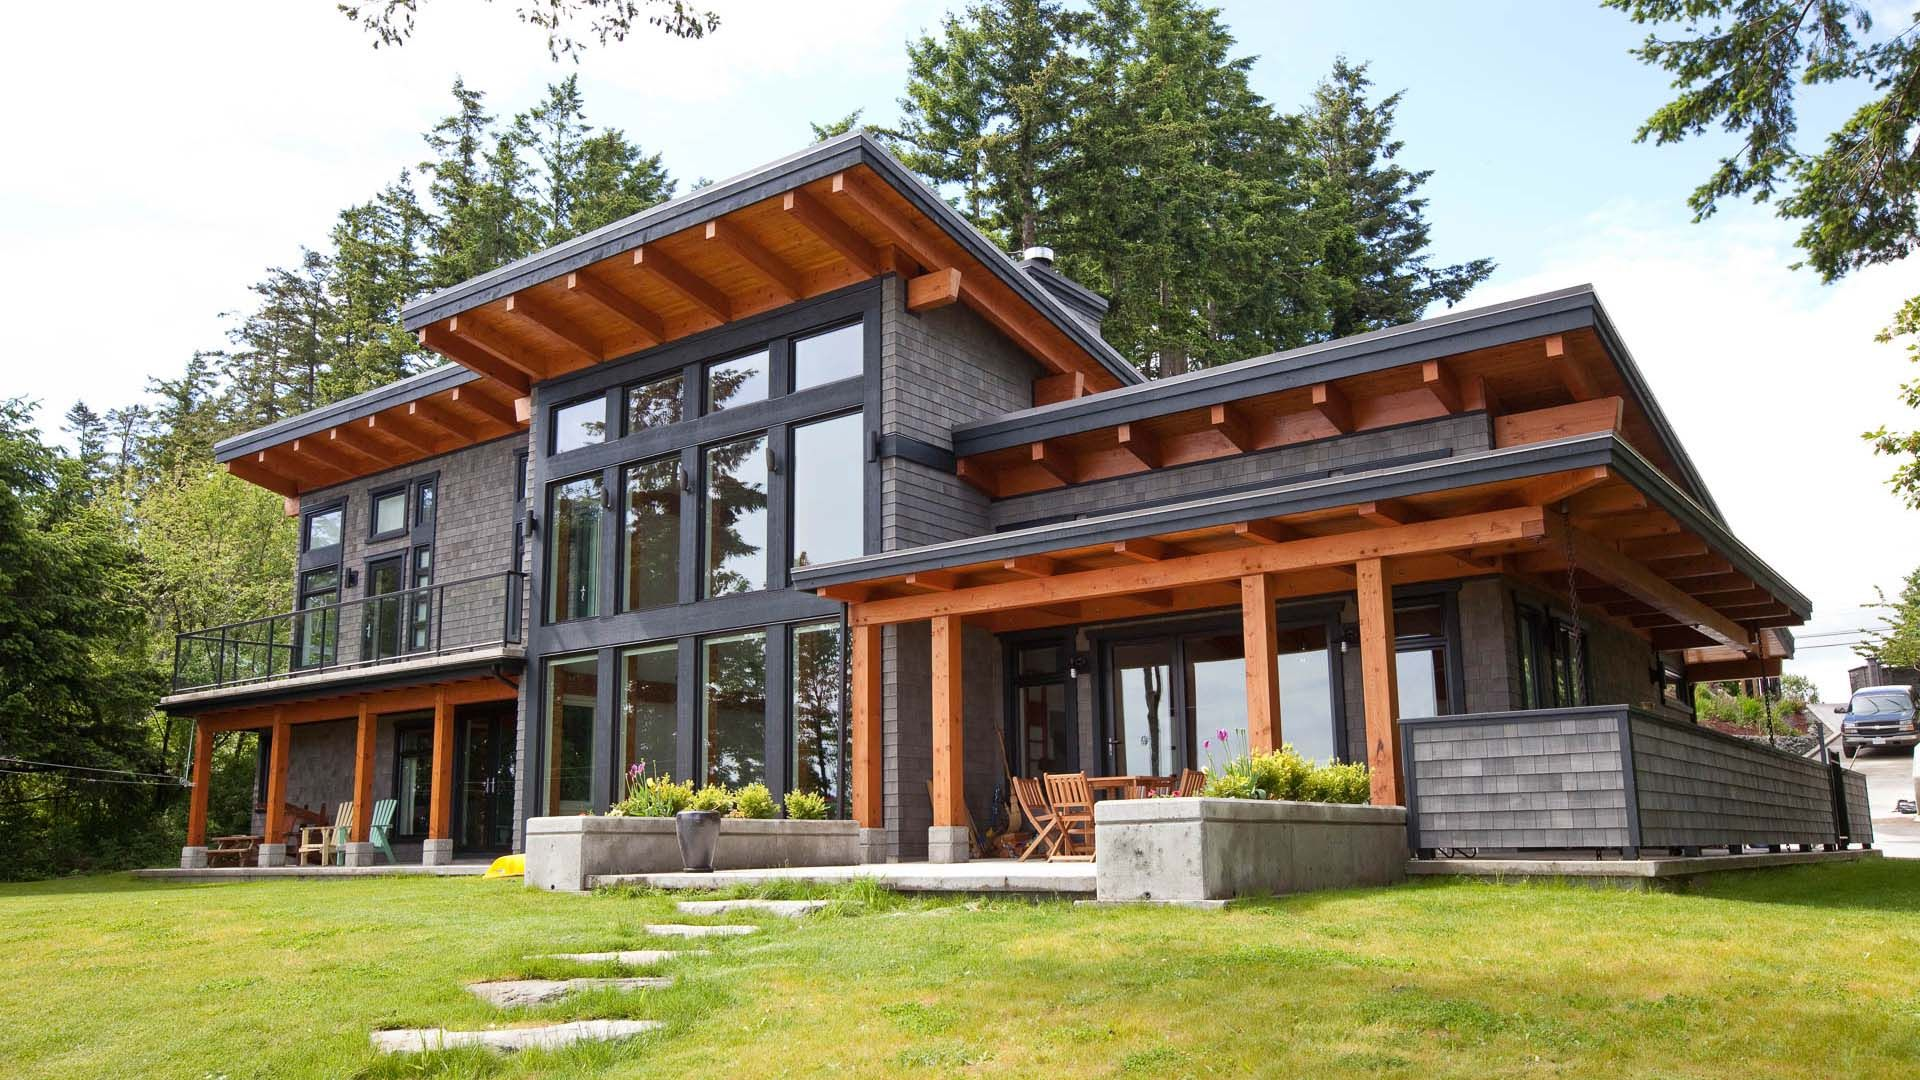 Best A Signature West Coast Contemporary Design This Modern Hybrid Timber Frame Home Is As Beautiful 400 x 300